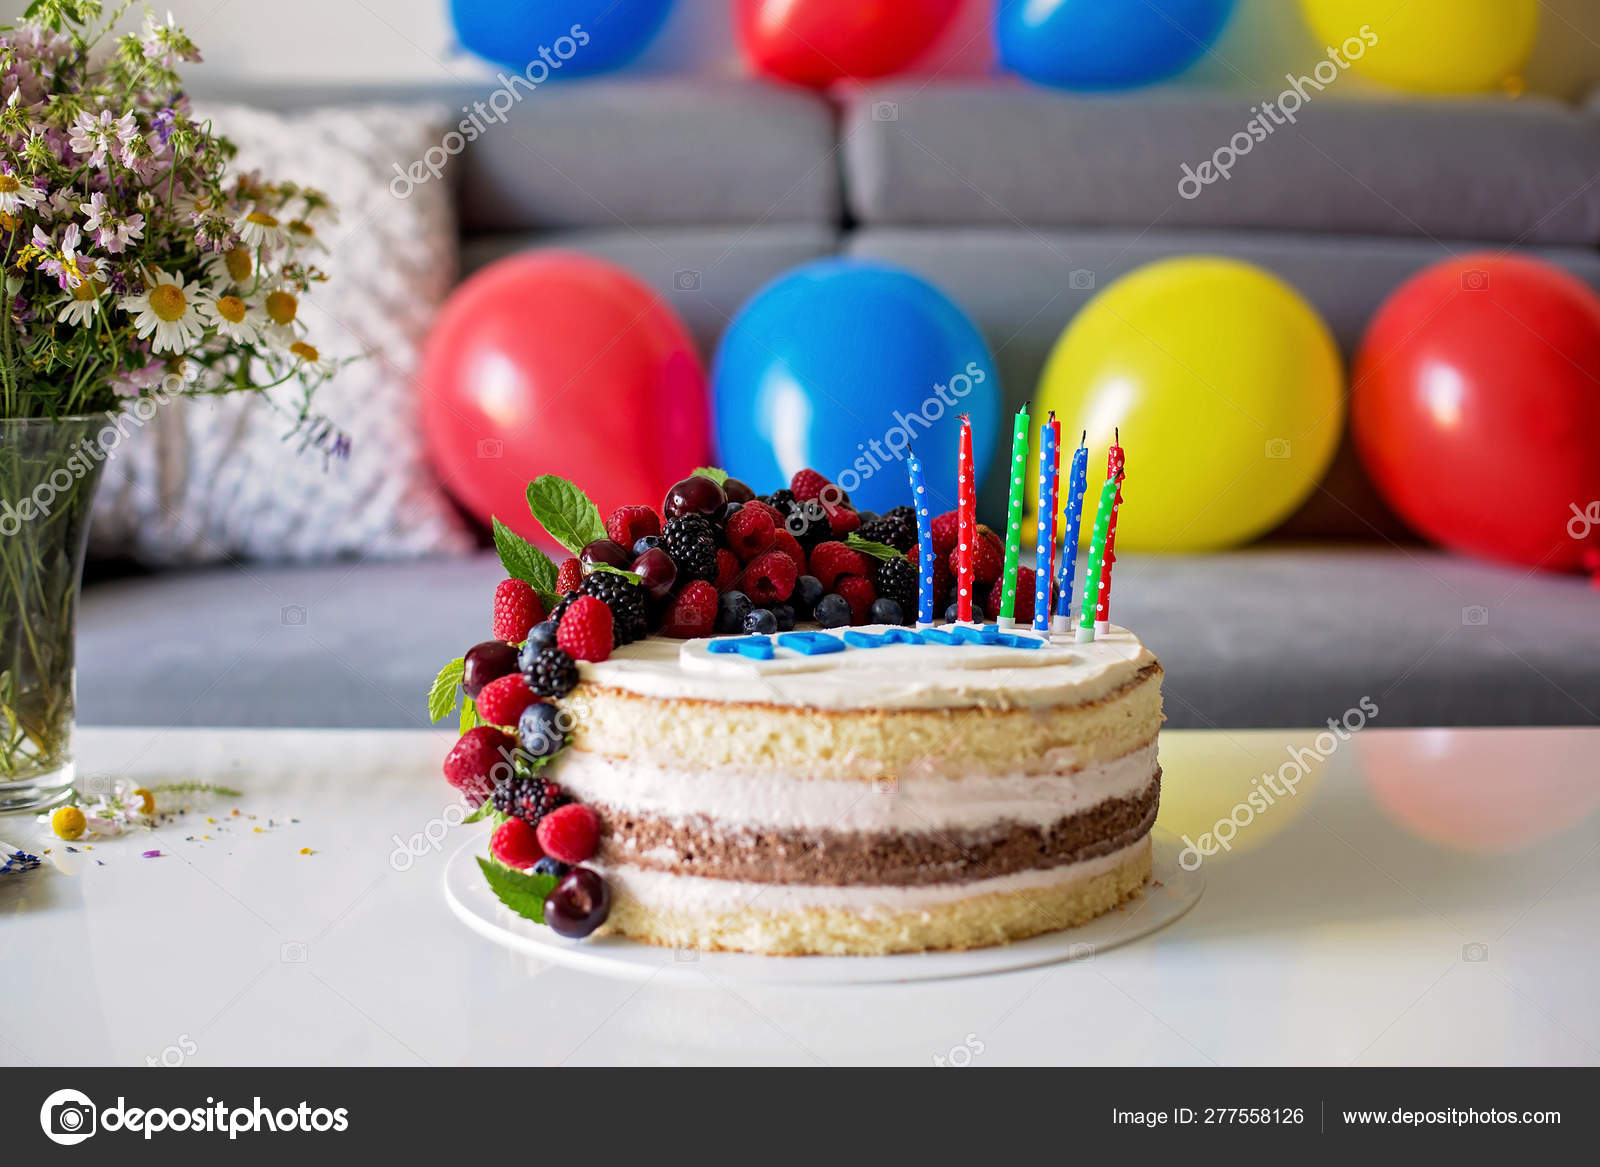 Brilliant Homemade Kids Birthday Cake With Lots Of Fruits On Top Cherries Funny Birthday Cards Online Sheoxdamsfinfo